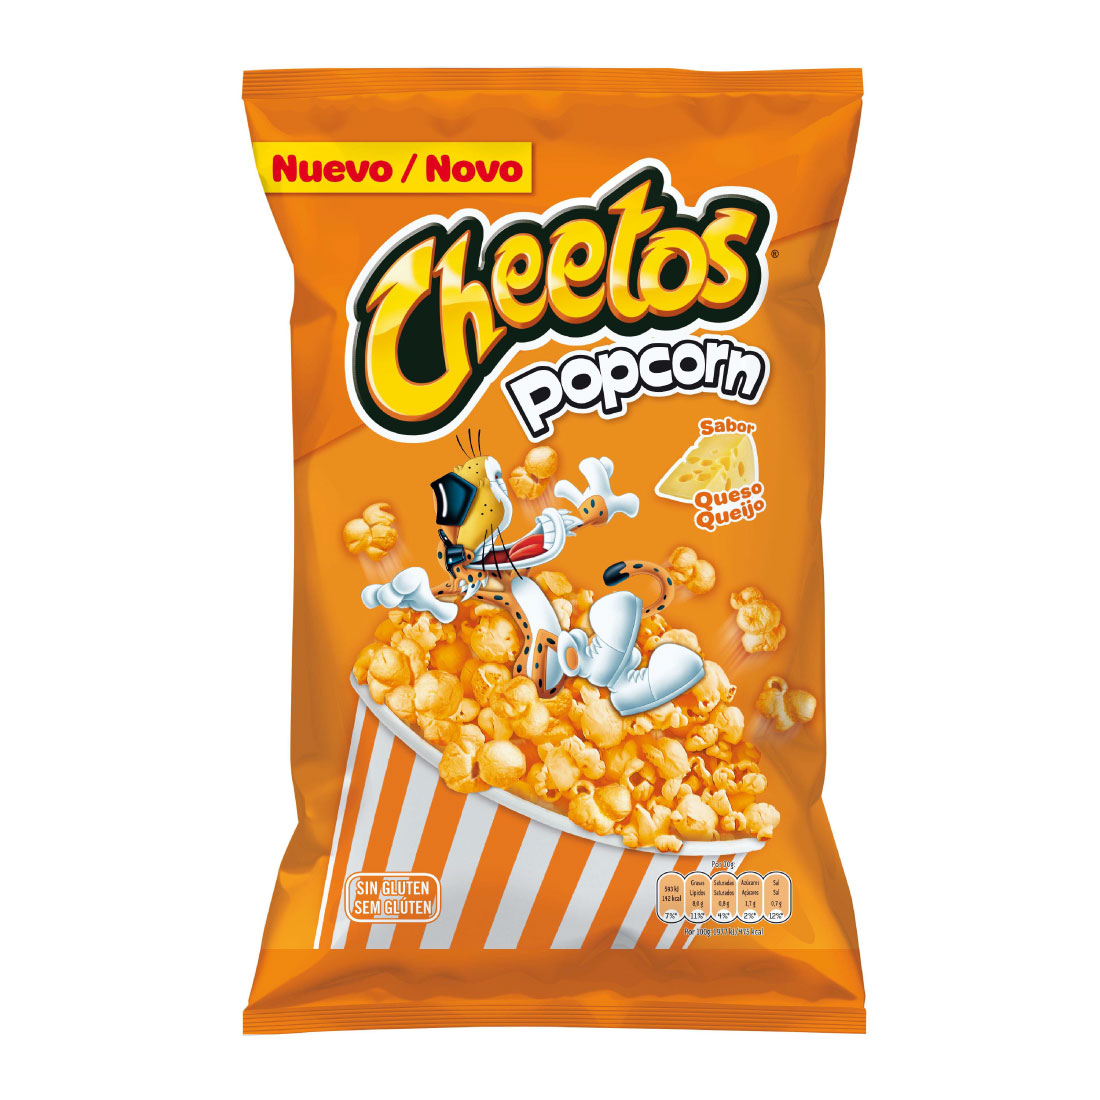 Cheetos palomitas sabor queso de 90g.